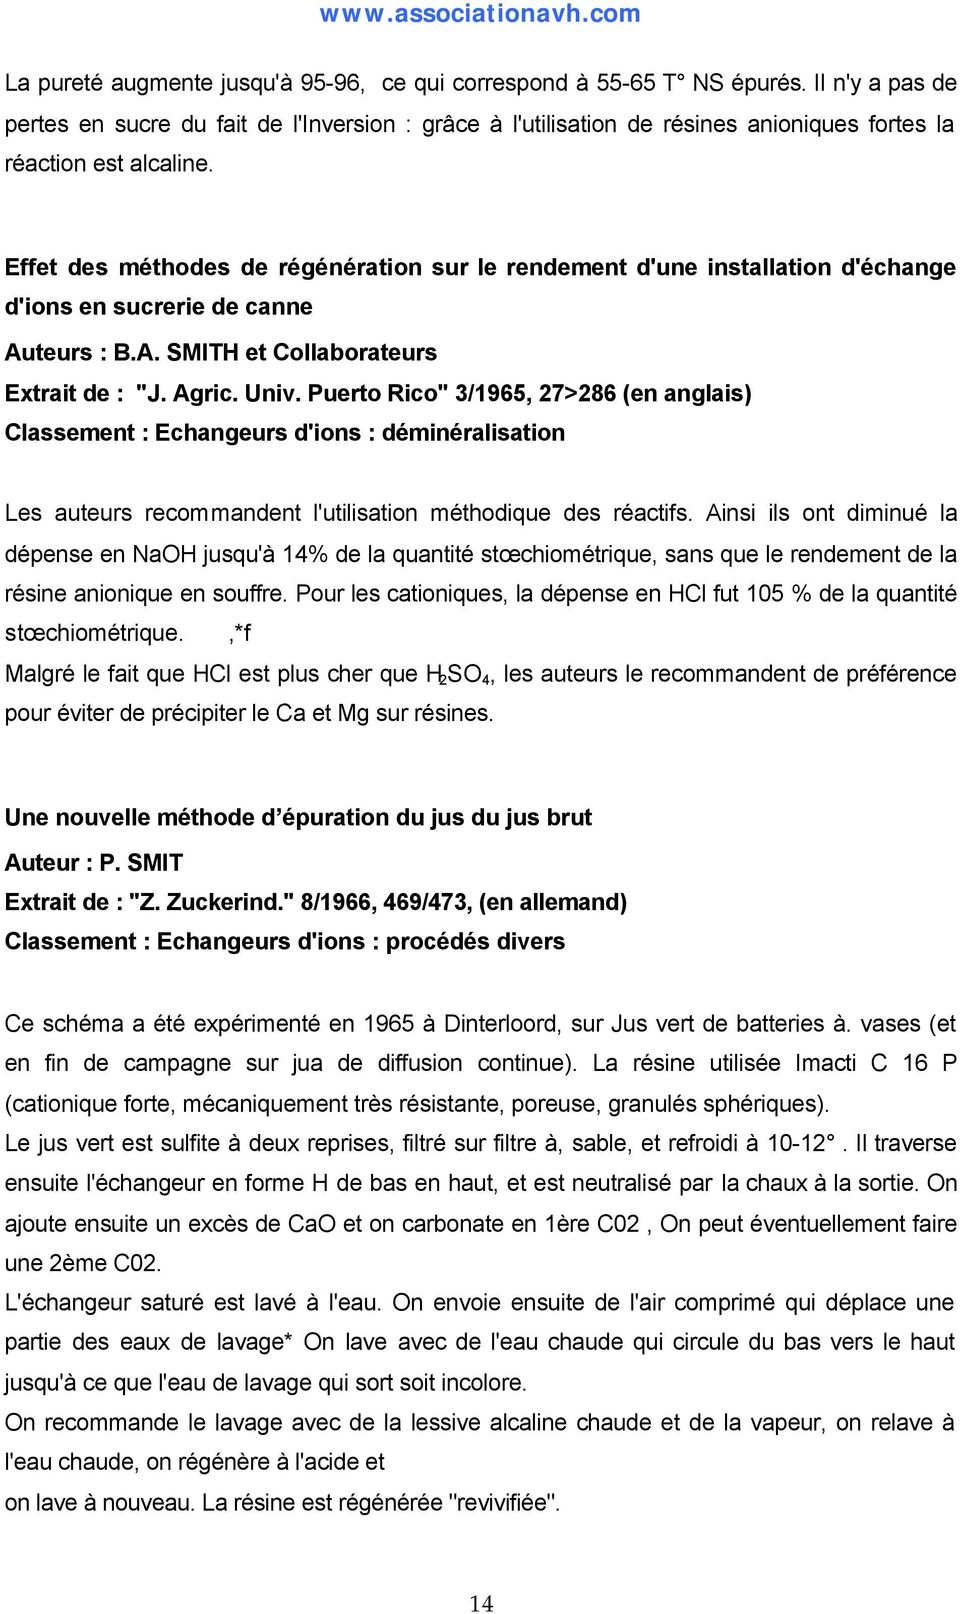 "Effet des méthodes de régénération sur le rendement d'une installation d'échange d'ions en sucrerie de canne Auteurs : B.A. SMITH et Collaborateurs Extrait de : ""J. Agric. Univ."